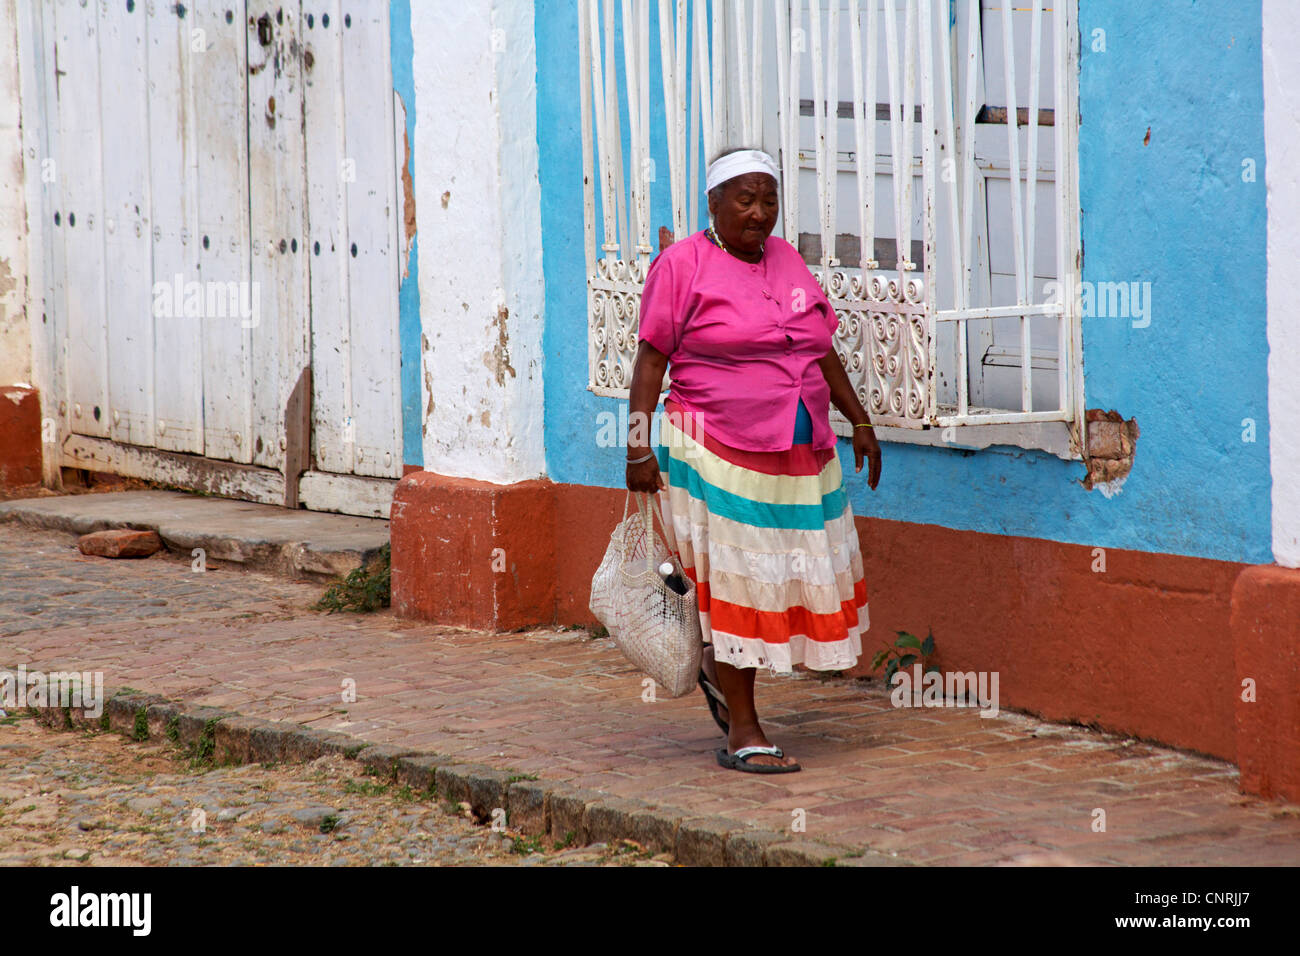 Daily life in Cuba - Afro-caribbean woman wearing bright coloured clothing carrying shopping down street at Trinidad, - Stock Image